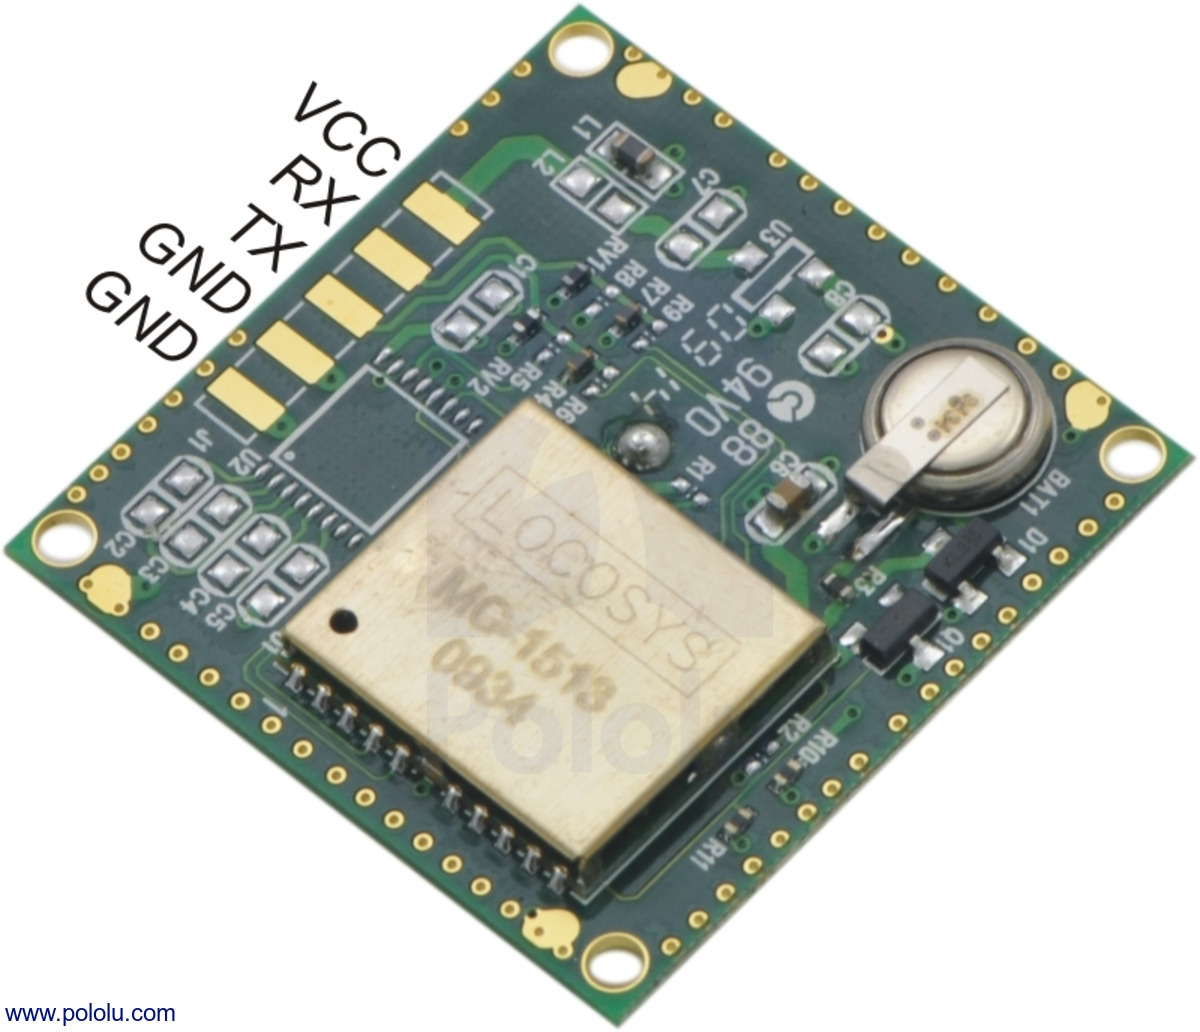 Pololu 66 Channel Ls20031 Gps Receiver Module Mt3329 Chipset Circuit Board Features